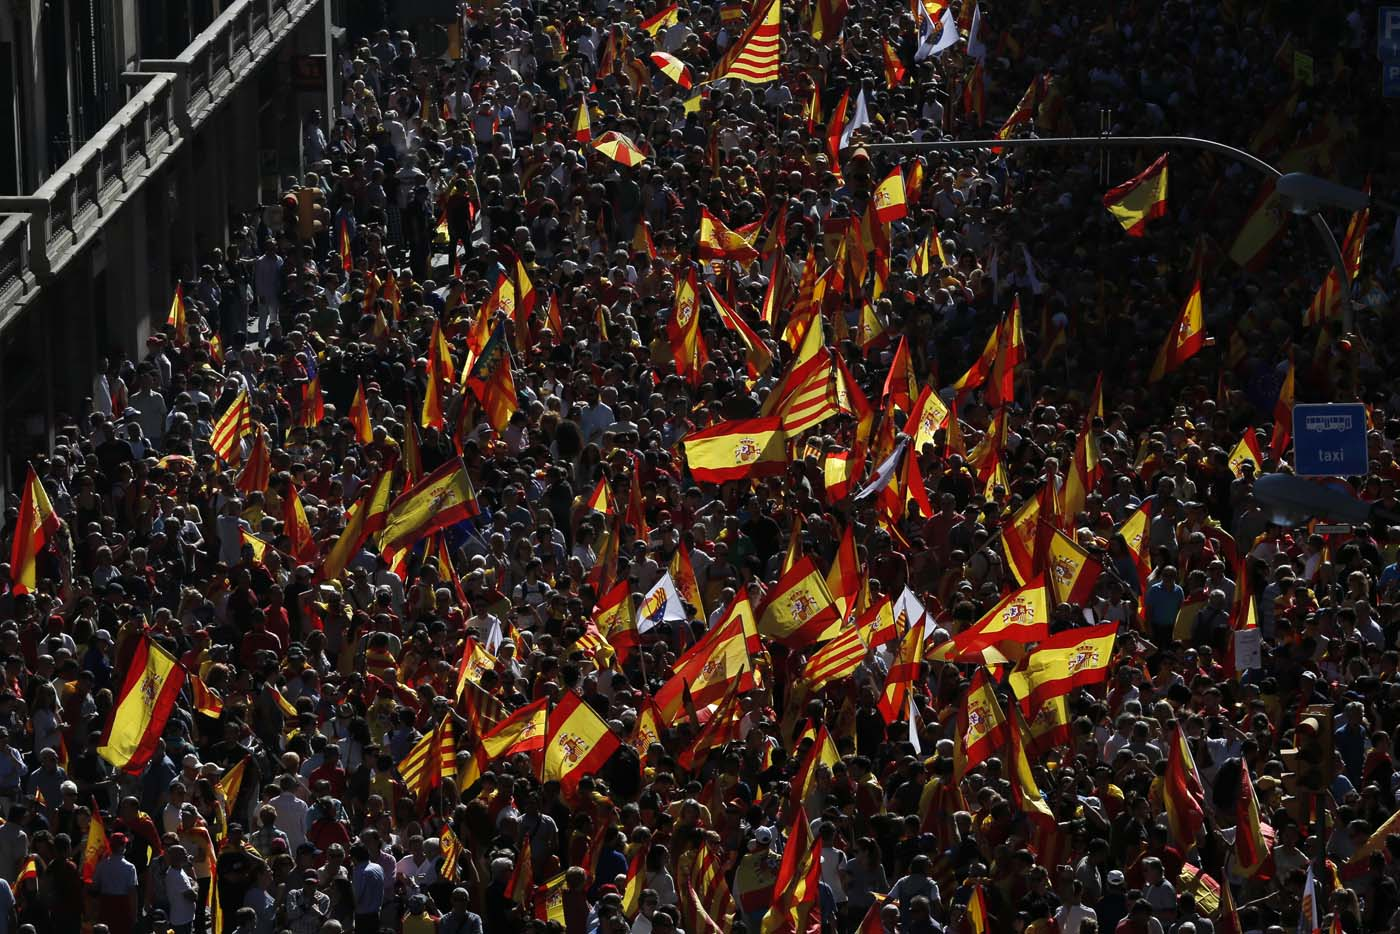 "Protesters hold Spanish flags during a demonstration called by ""Societat Civil Catalana"" (Catalan Civil Society) to support the unity of Spain on October 8, 2017 in Barcelona. Spain braced for more protests despite tentative signs that the sides may be seeking to defuse the crisis after Madrid offered a first apology to Catalans injured by police during their outlawed independence vote. / AFP PHOTO / PAU BARRENA"